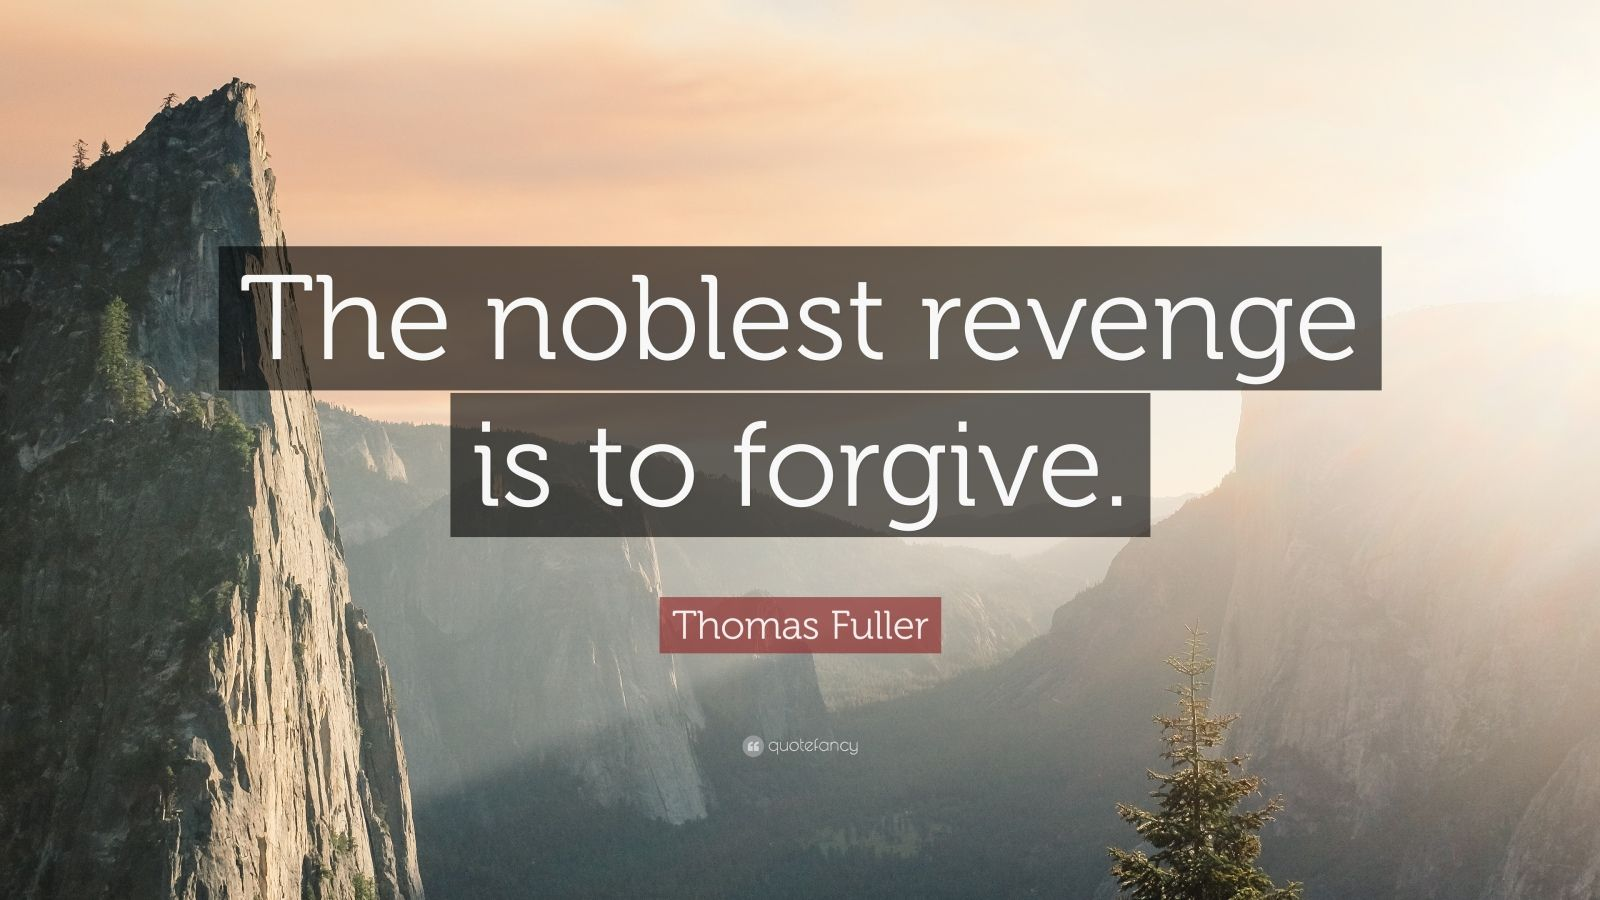 forgivness is the noblest revenge The noblest revenge is  revenge vs forgiveness there was once a man who was bitten by a dog, which was later discovered to be rabid the man was rushed to the.